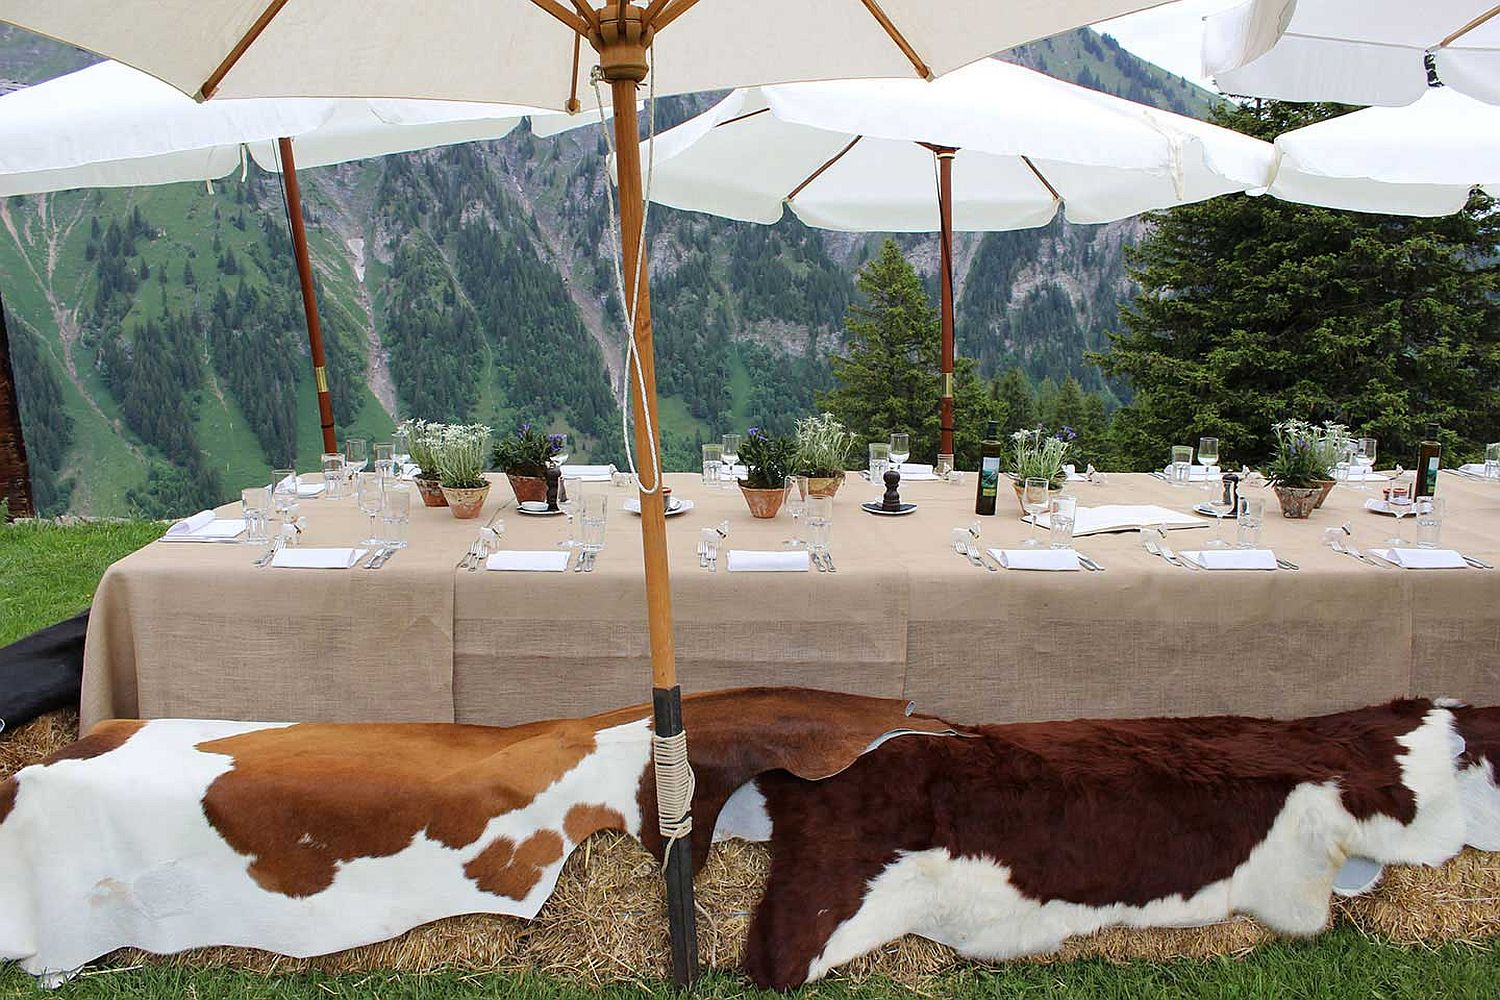 Amazing sight of the alps leaves you spellbound at this Swiss hotel